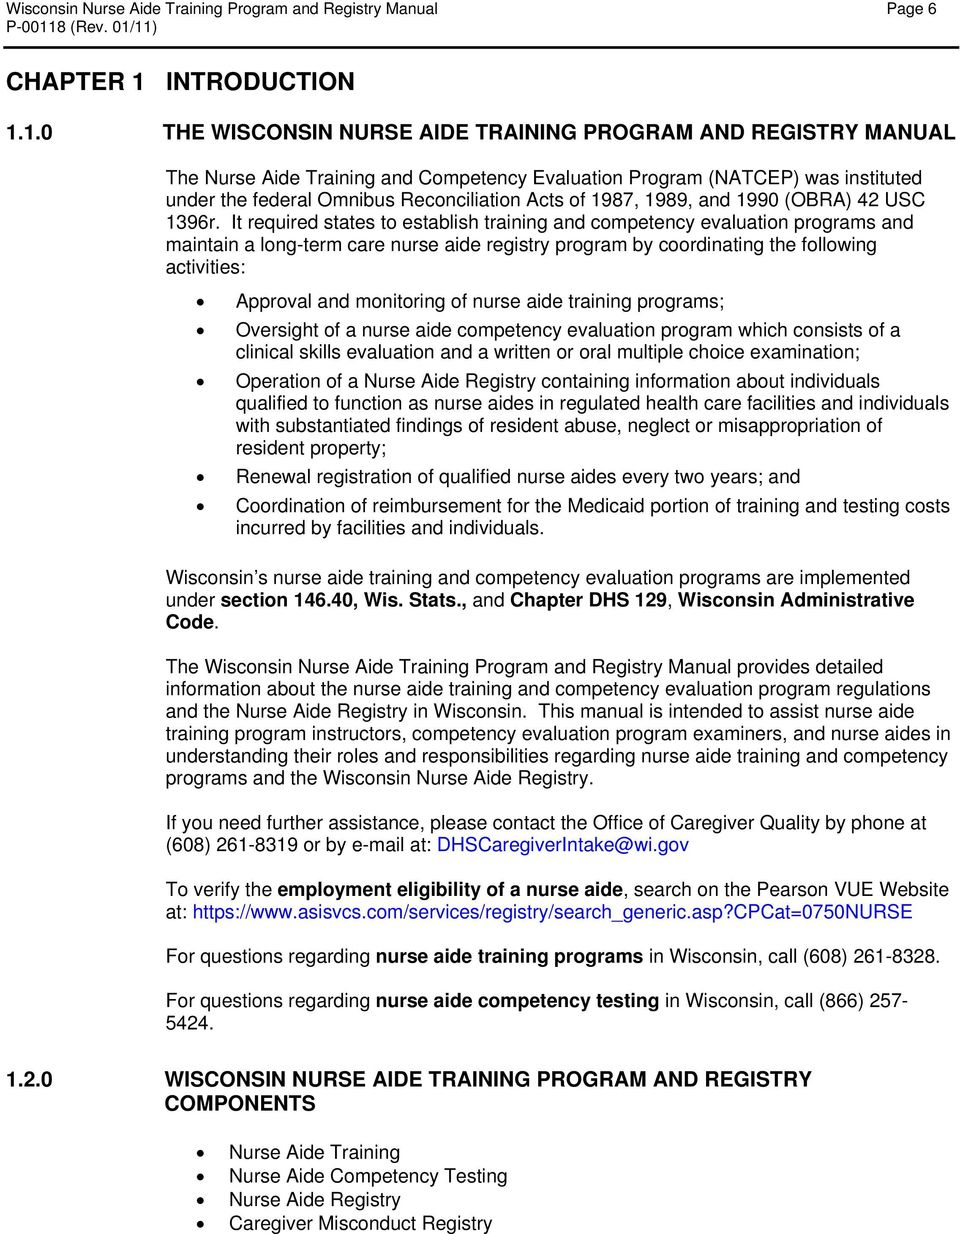 1.0 THE WISCONSIN NURSE AIDE TRAINING PROGRAM AND REGISTRY MANUAL The Nurse Aide Training and Competency Evaluation Program (NATCEP) was instituted under the federal Omnibus Reconciliation Acts of